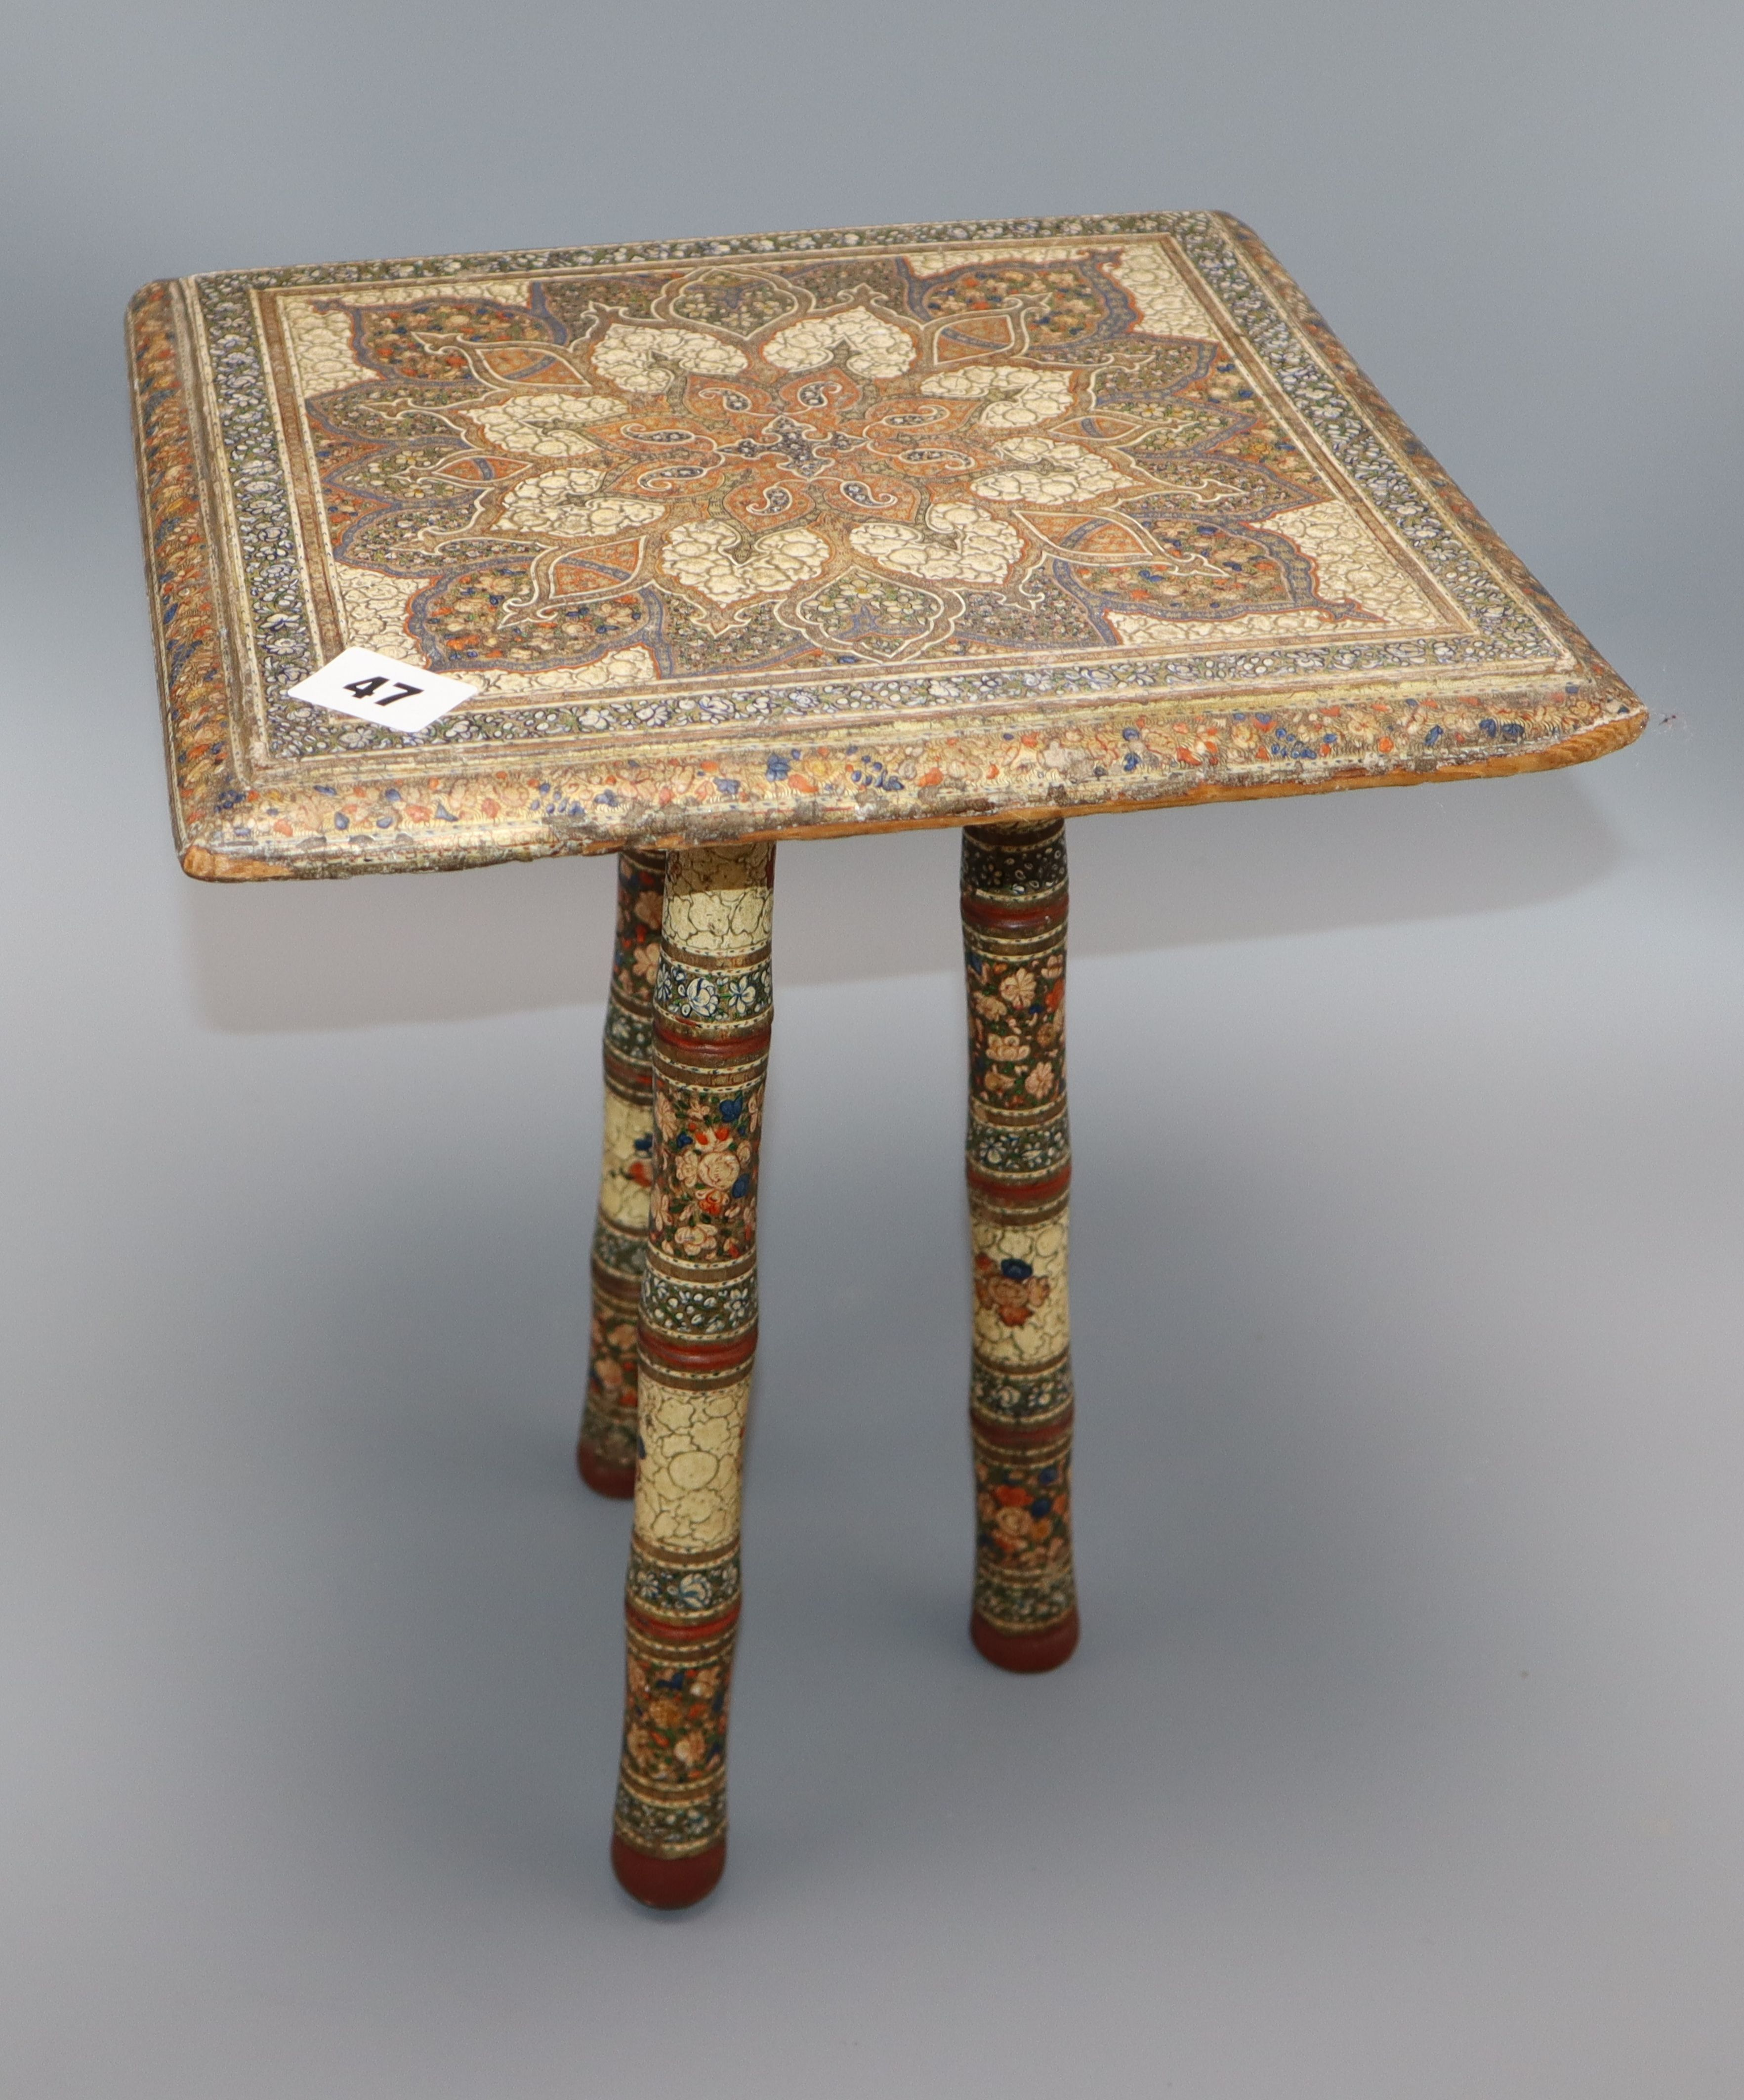 Lot 47 - A 19th century Kashmiri painted wood tripod table height 36cmProvenance - from the family of a